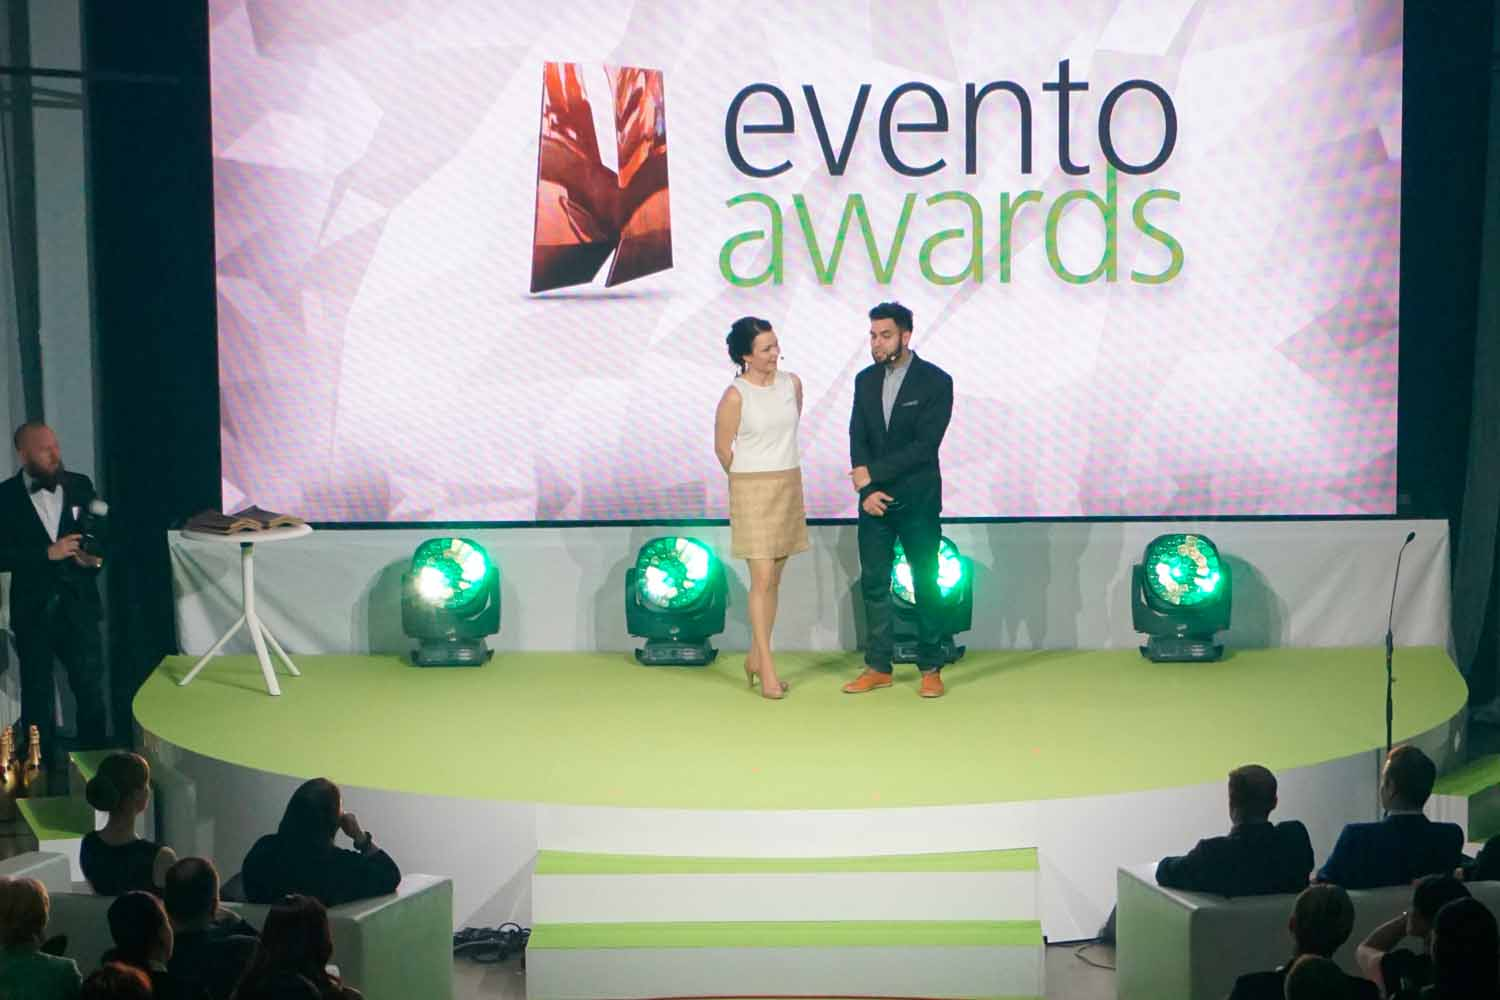 Referenssi / Evento Awards gaala